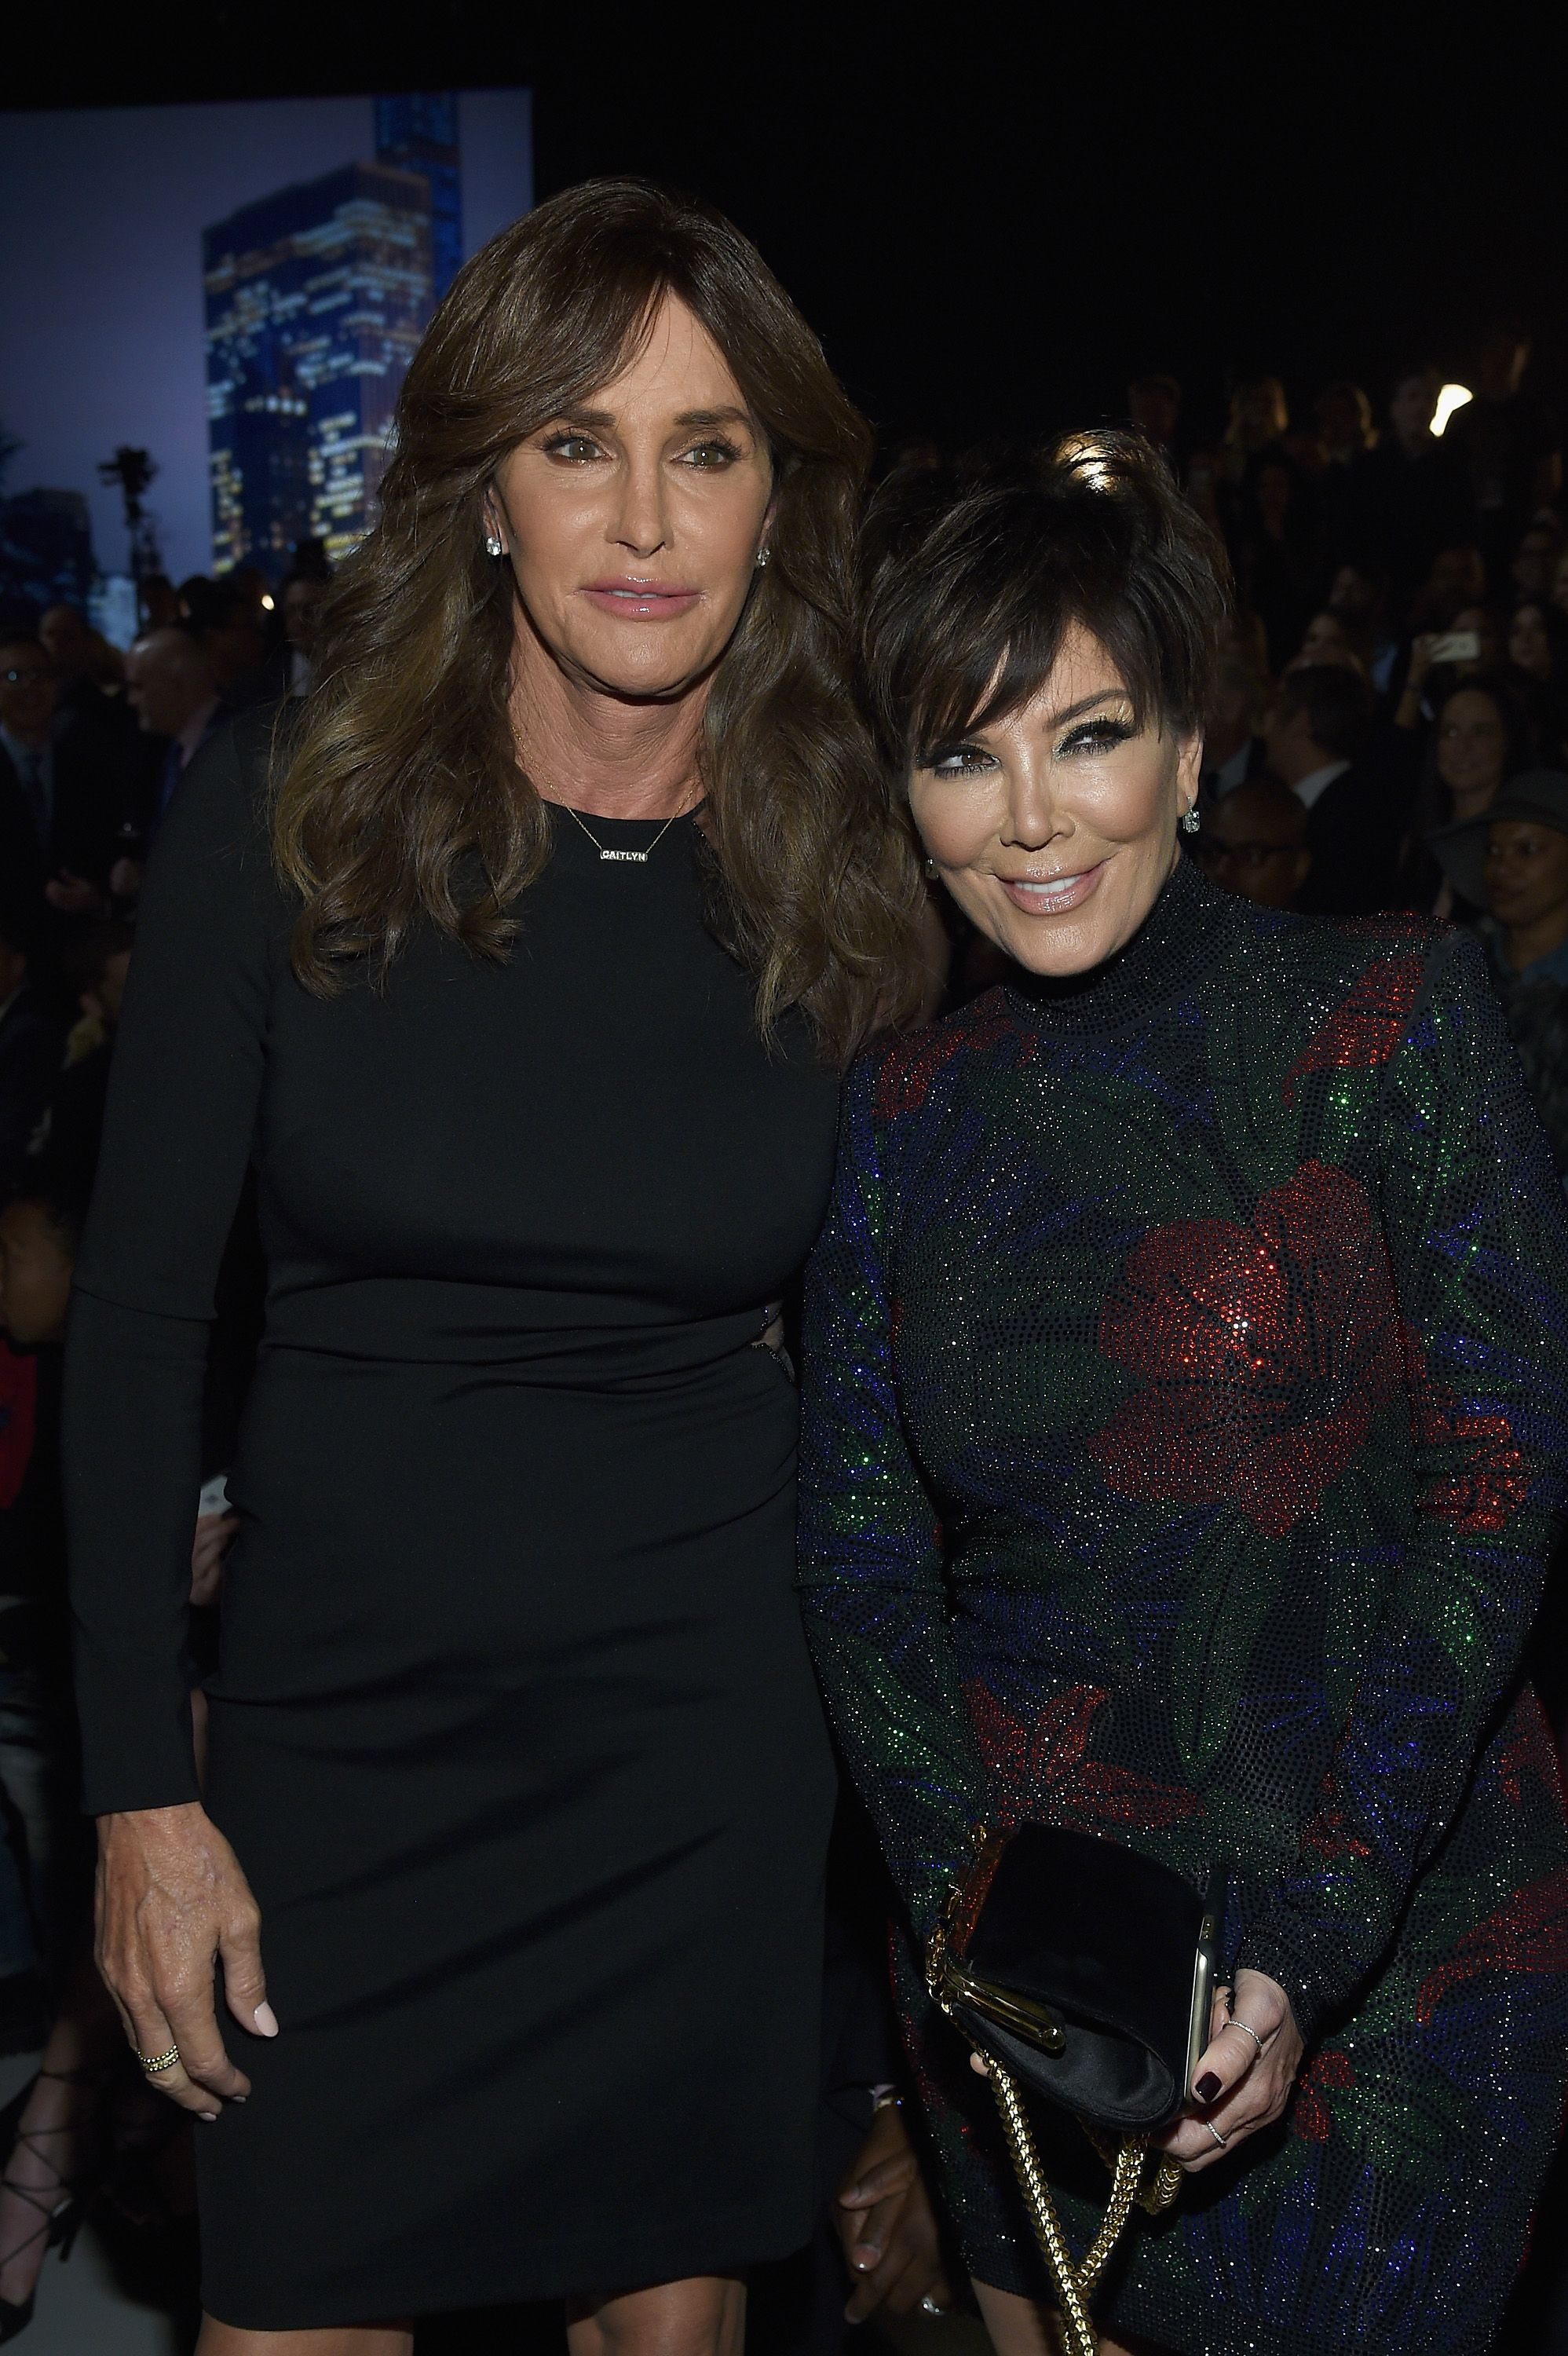 Caitlyn Jenner and Kris Jenner at the 2015 Victoria's Secret Fashion Show at Lexington Avenue Armory on November 10, 2015   Photo: Getty Images